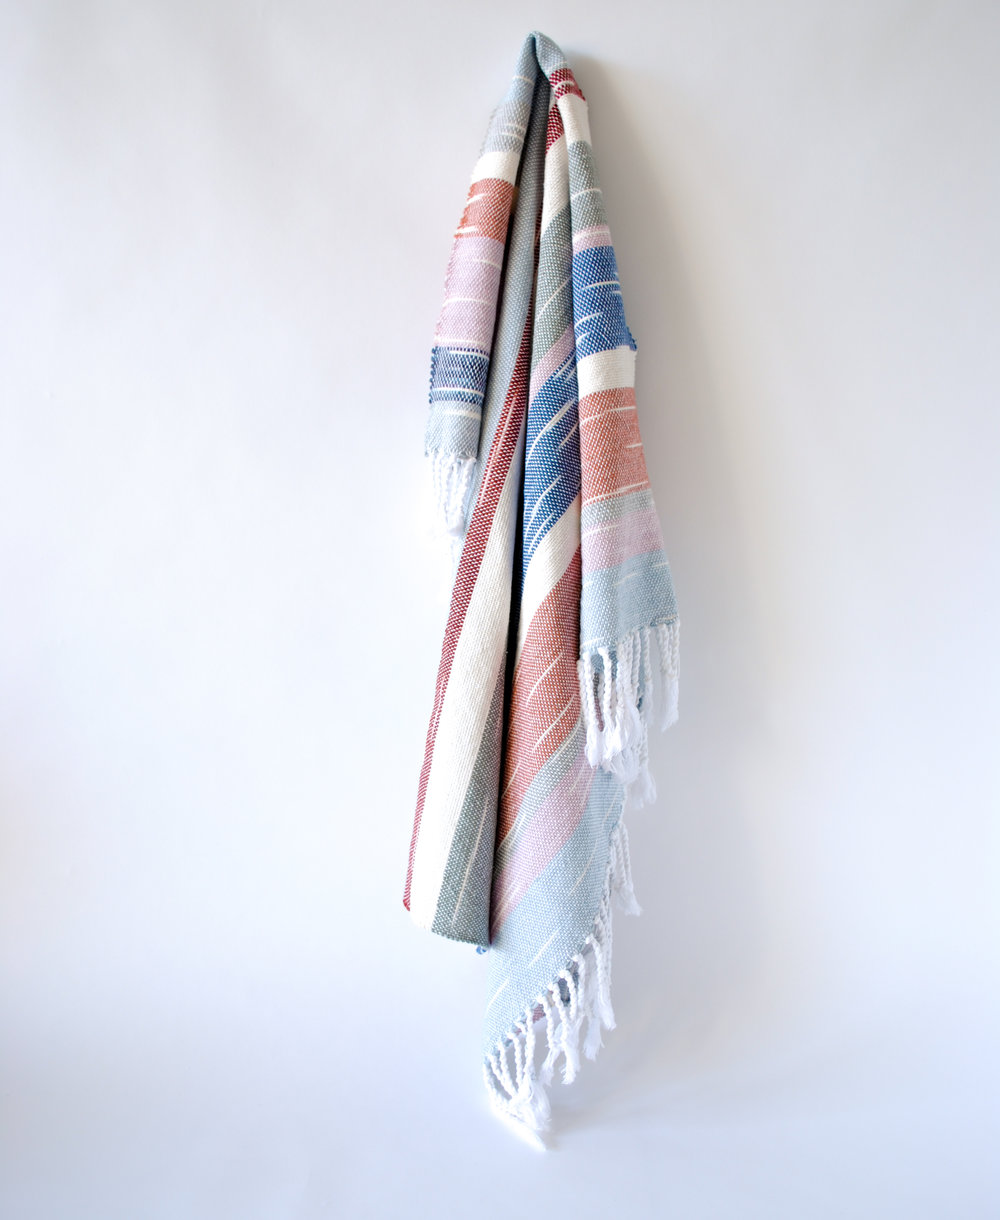 WEGATHER_Handwoven_BundleBlanket_Hanging.JPG